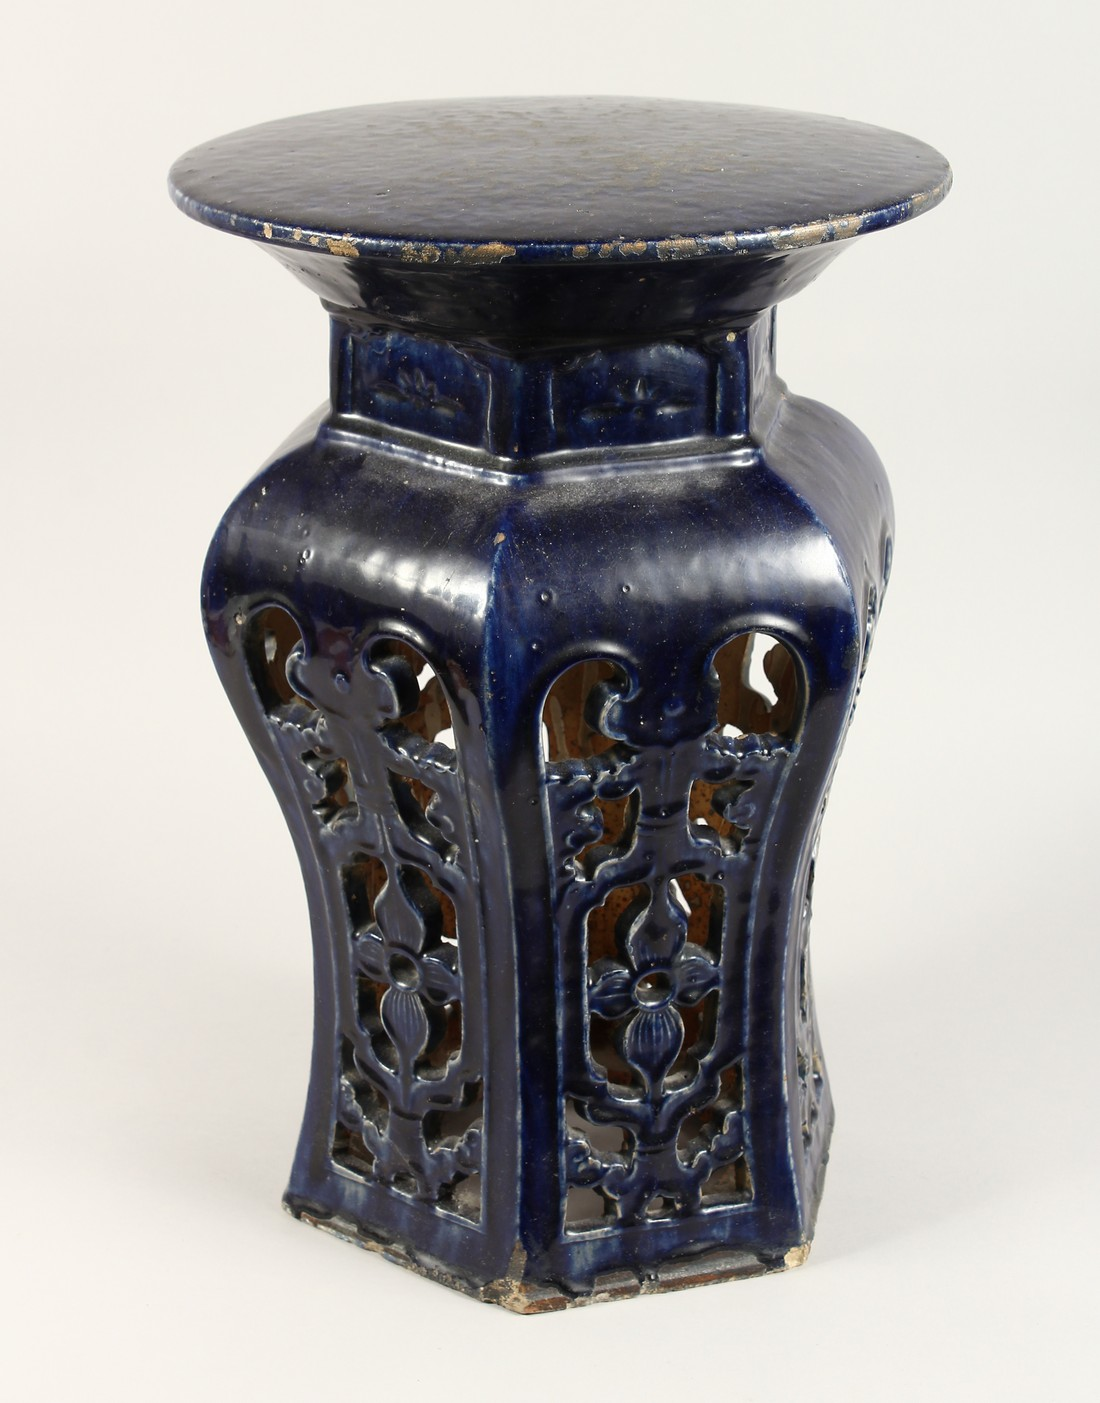 A CHINESE POTTERY SEAT with circular top and pierced sides. 1ft 8ins high.